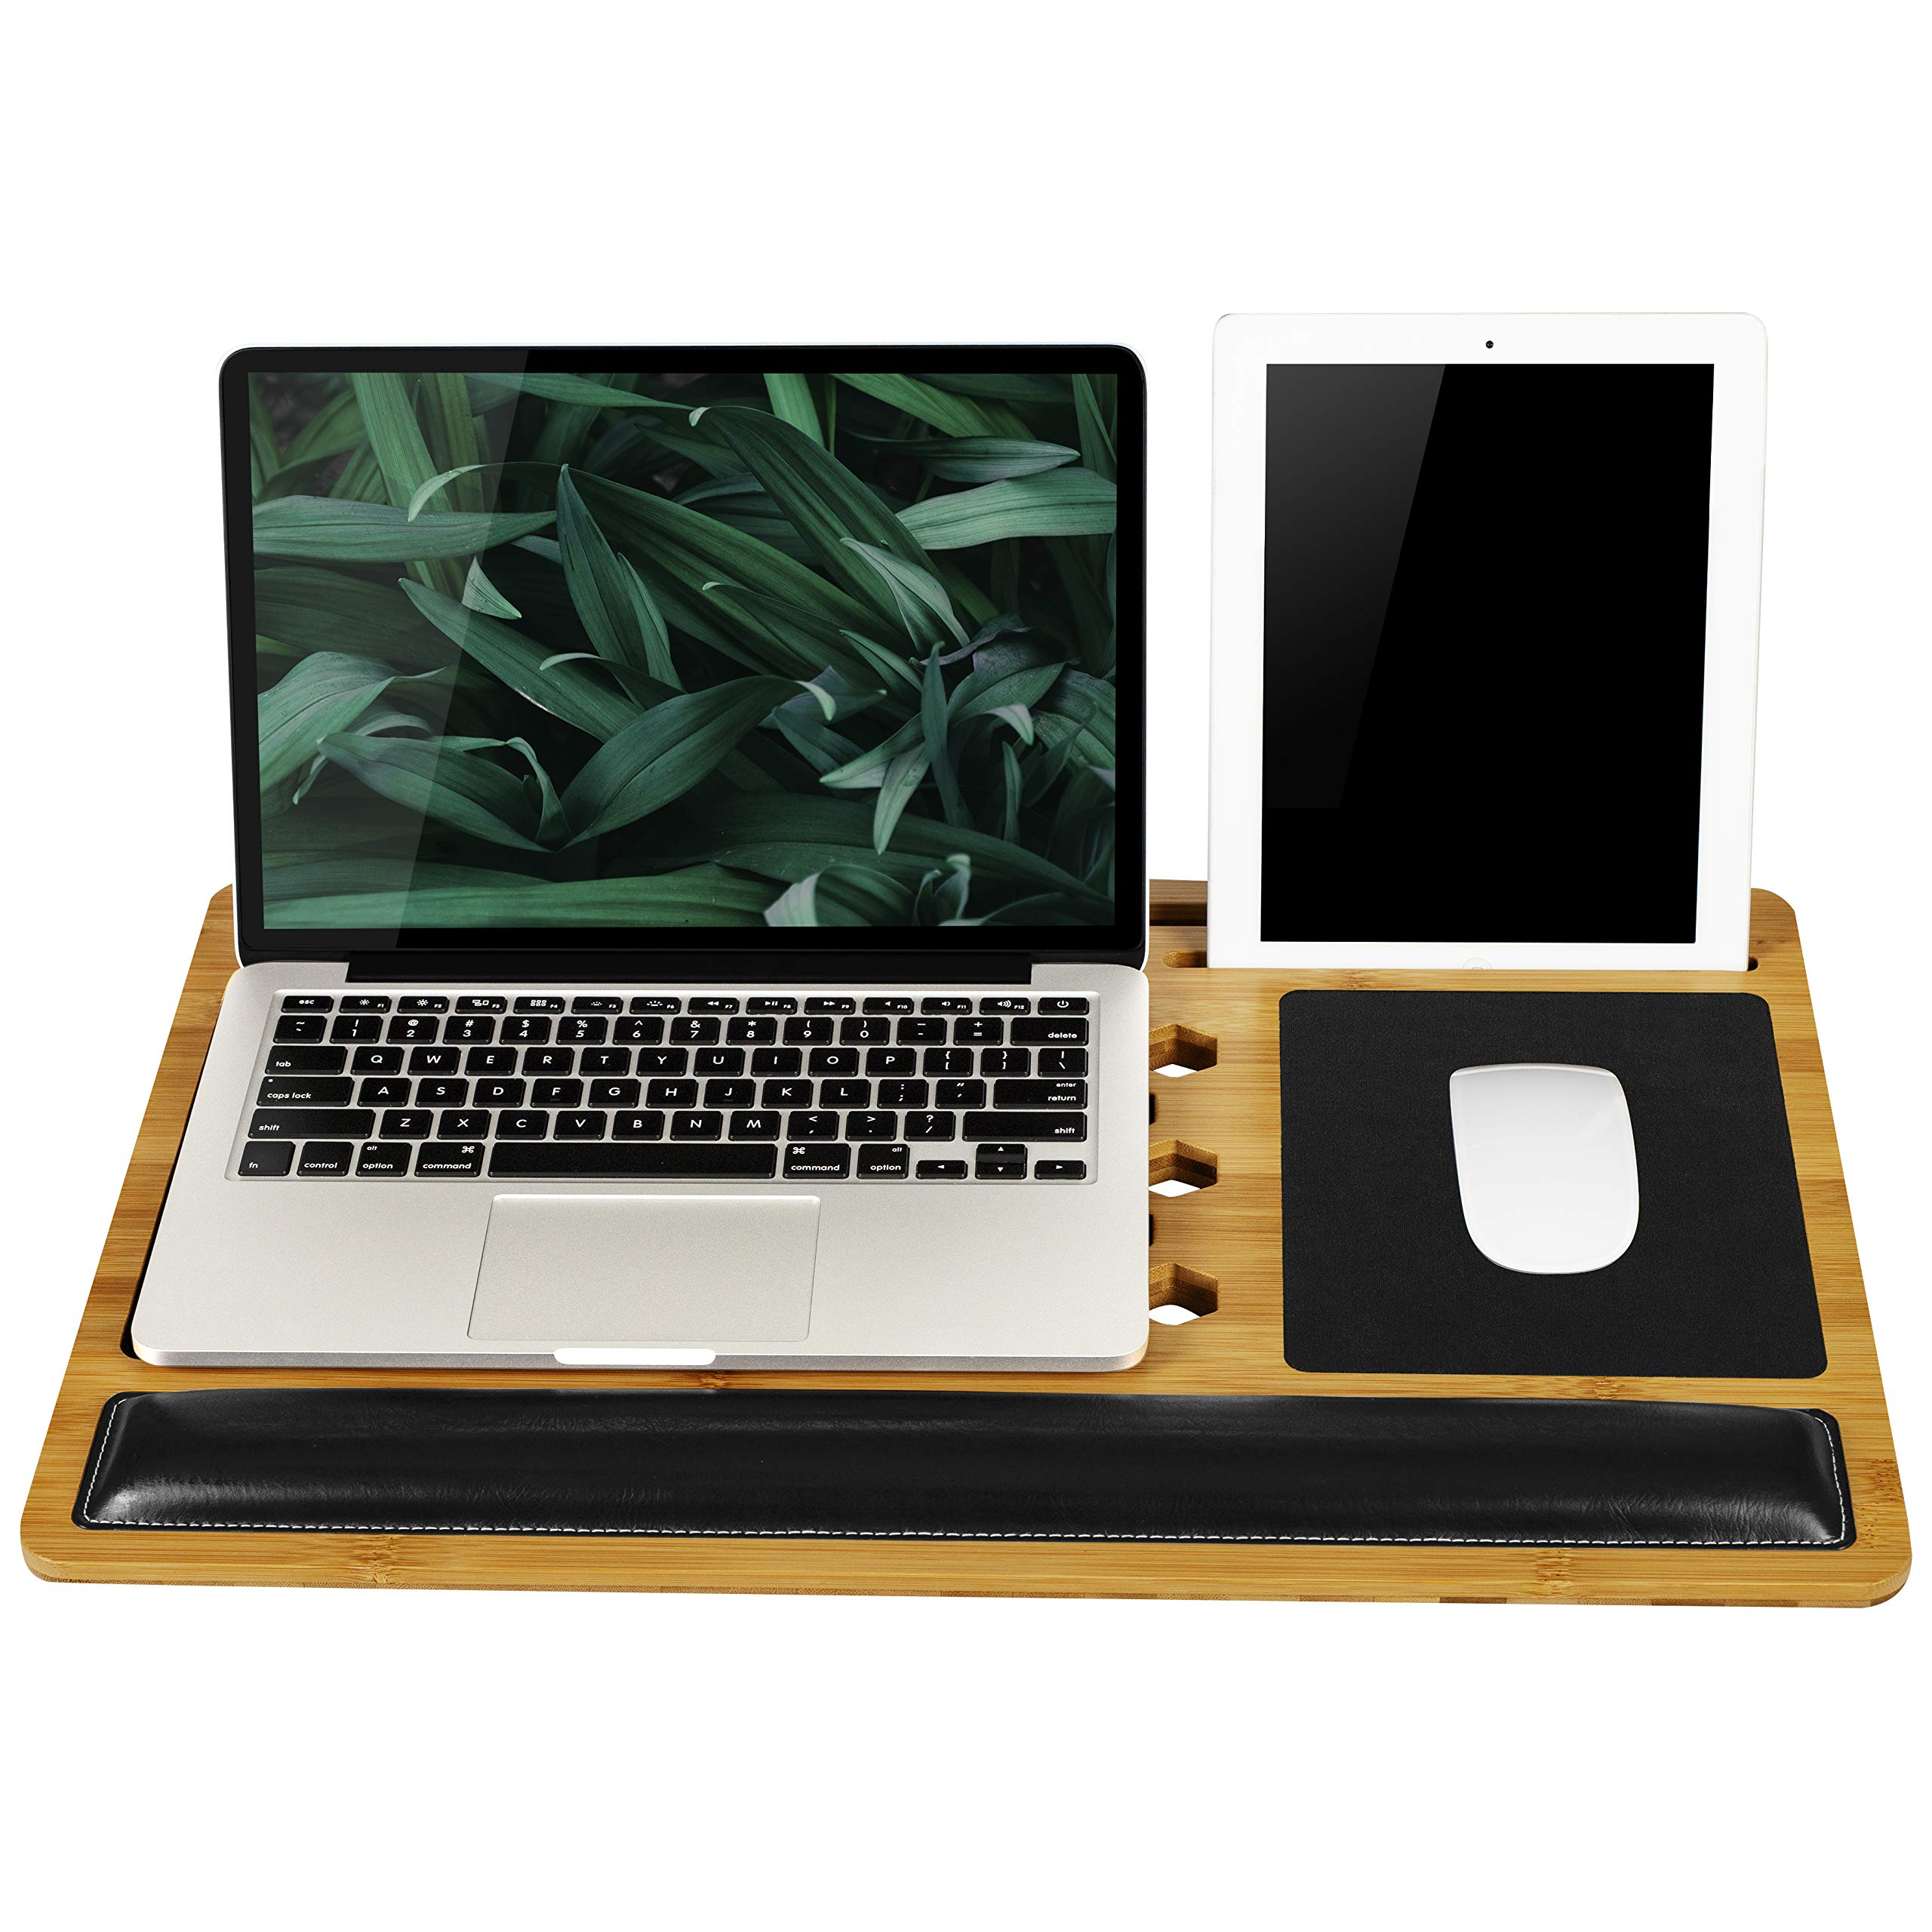 LapGear Bamboard Pro Lap Desk with Wrist Rest, Mouse Pads, and Phone Holder - Fits Up to 17.3 Inch Laptops and Most Tablet Devices - Style No. 77101 by LapGear (Image #1)